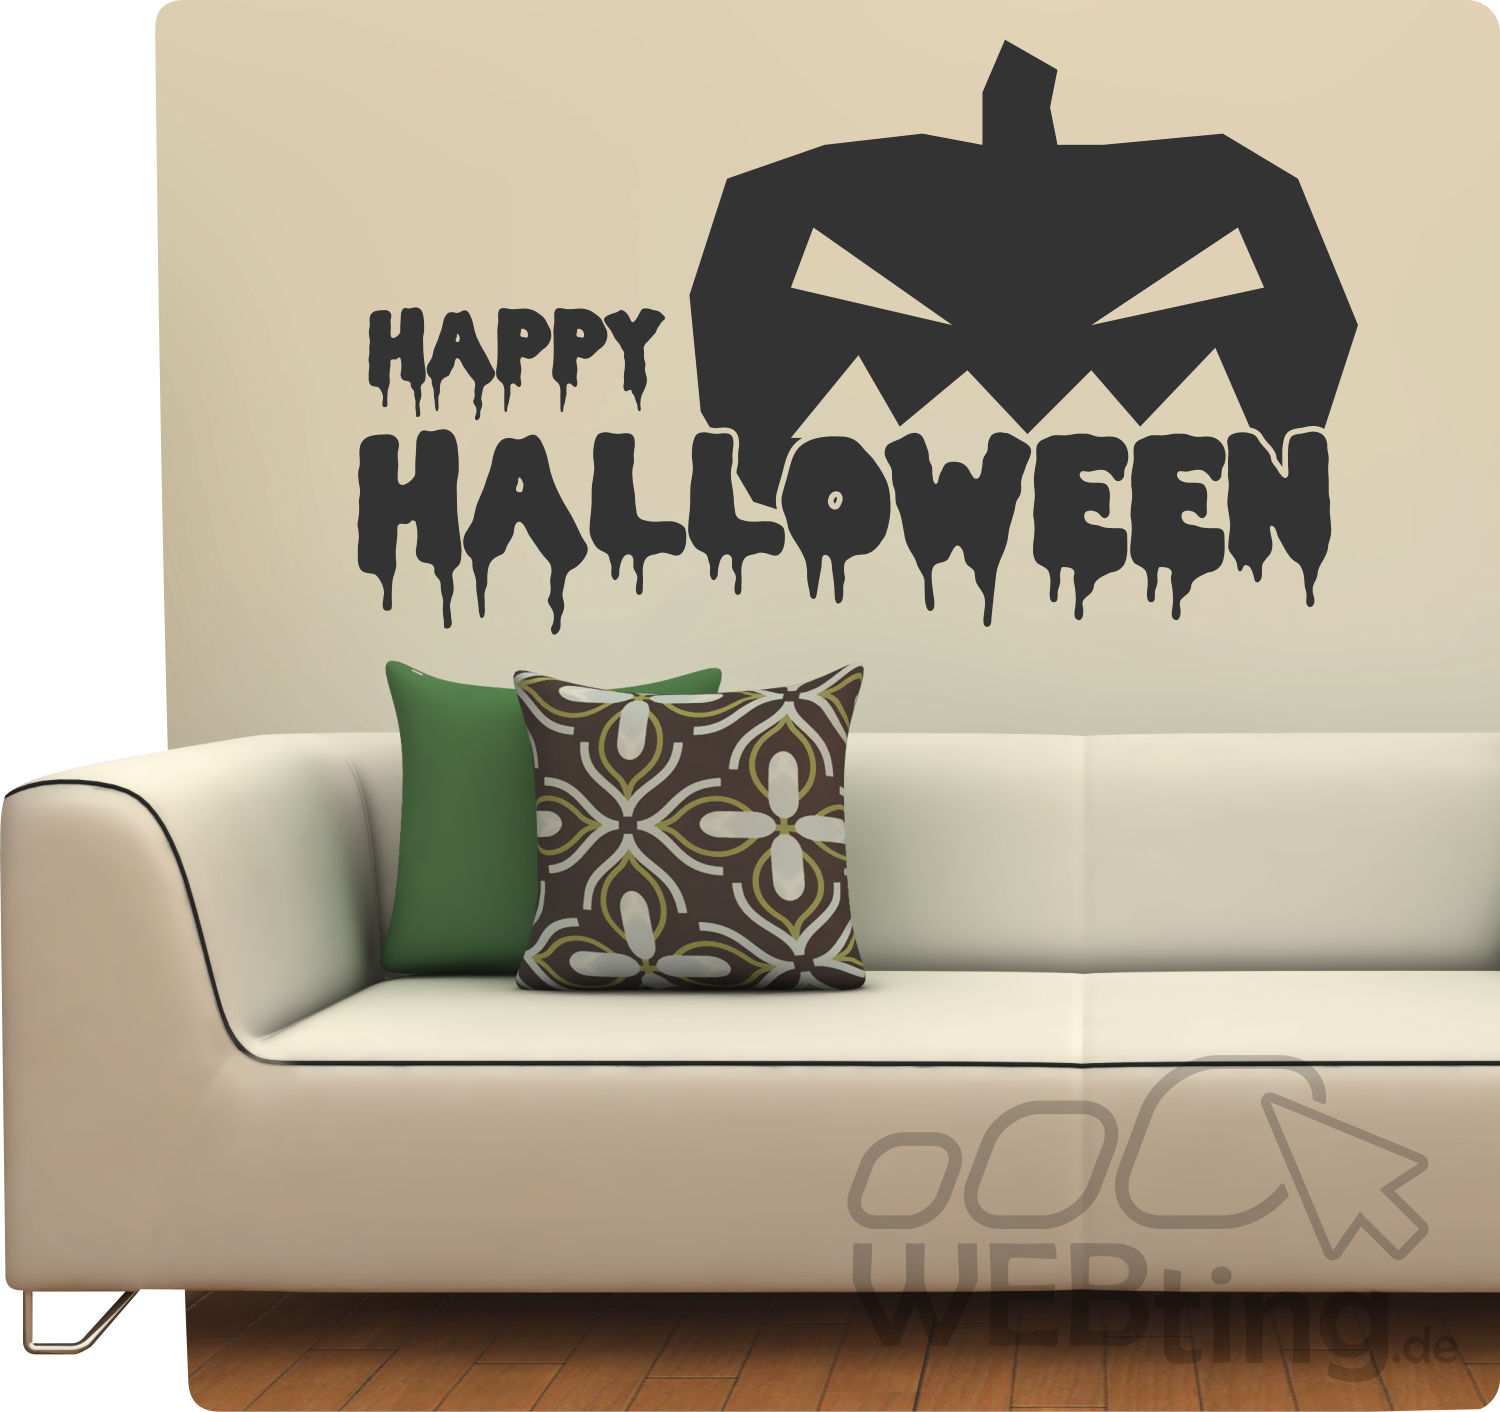 halloween k rbis fledermaus deko wandtattoo wandaufkleber aufkleber sticker hexe. Black Bedroom Furniture Sets. Home Design Ideas